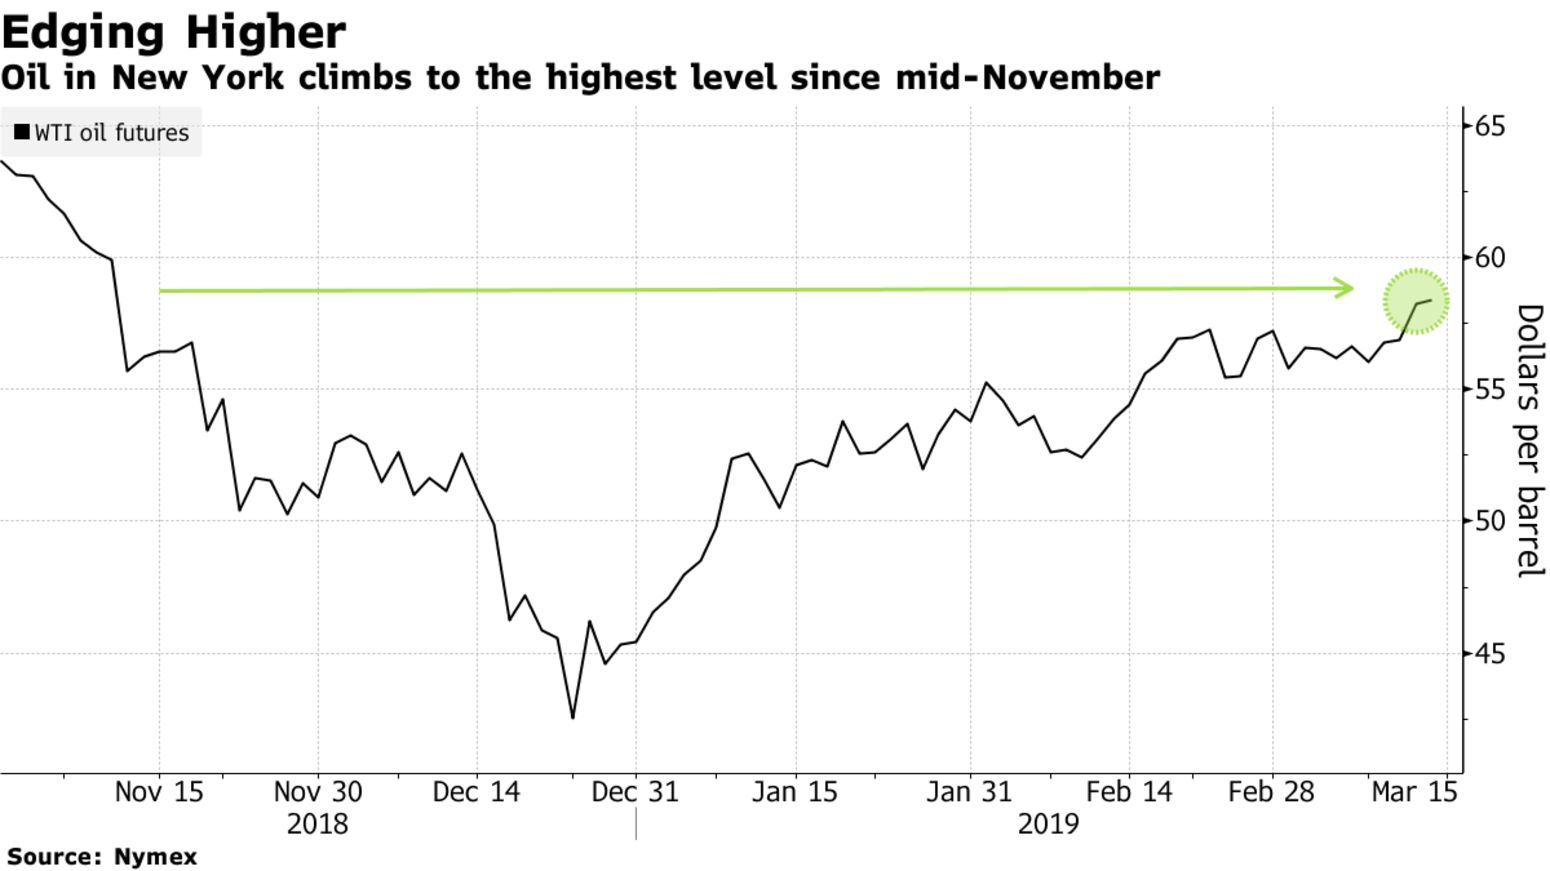 Oil in New York climbs to the highest level since mid-November